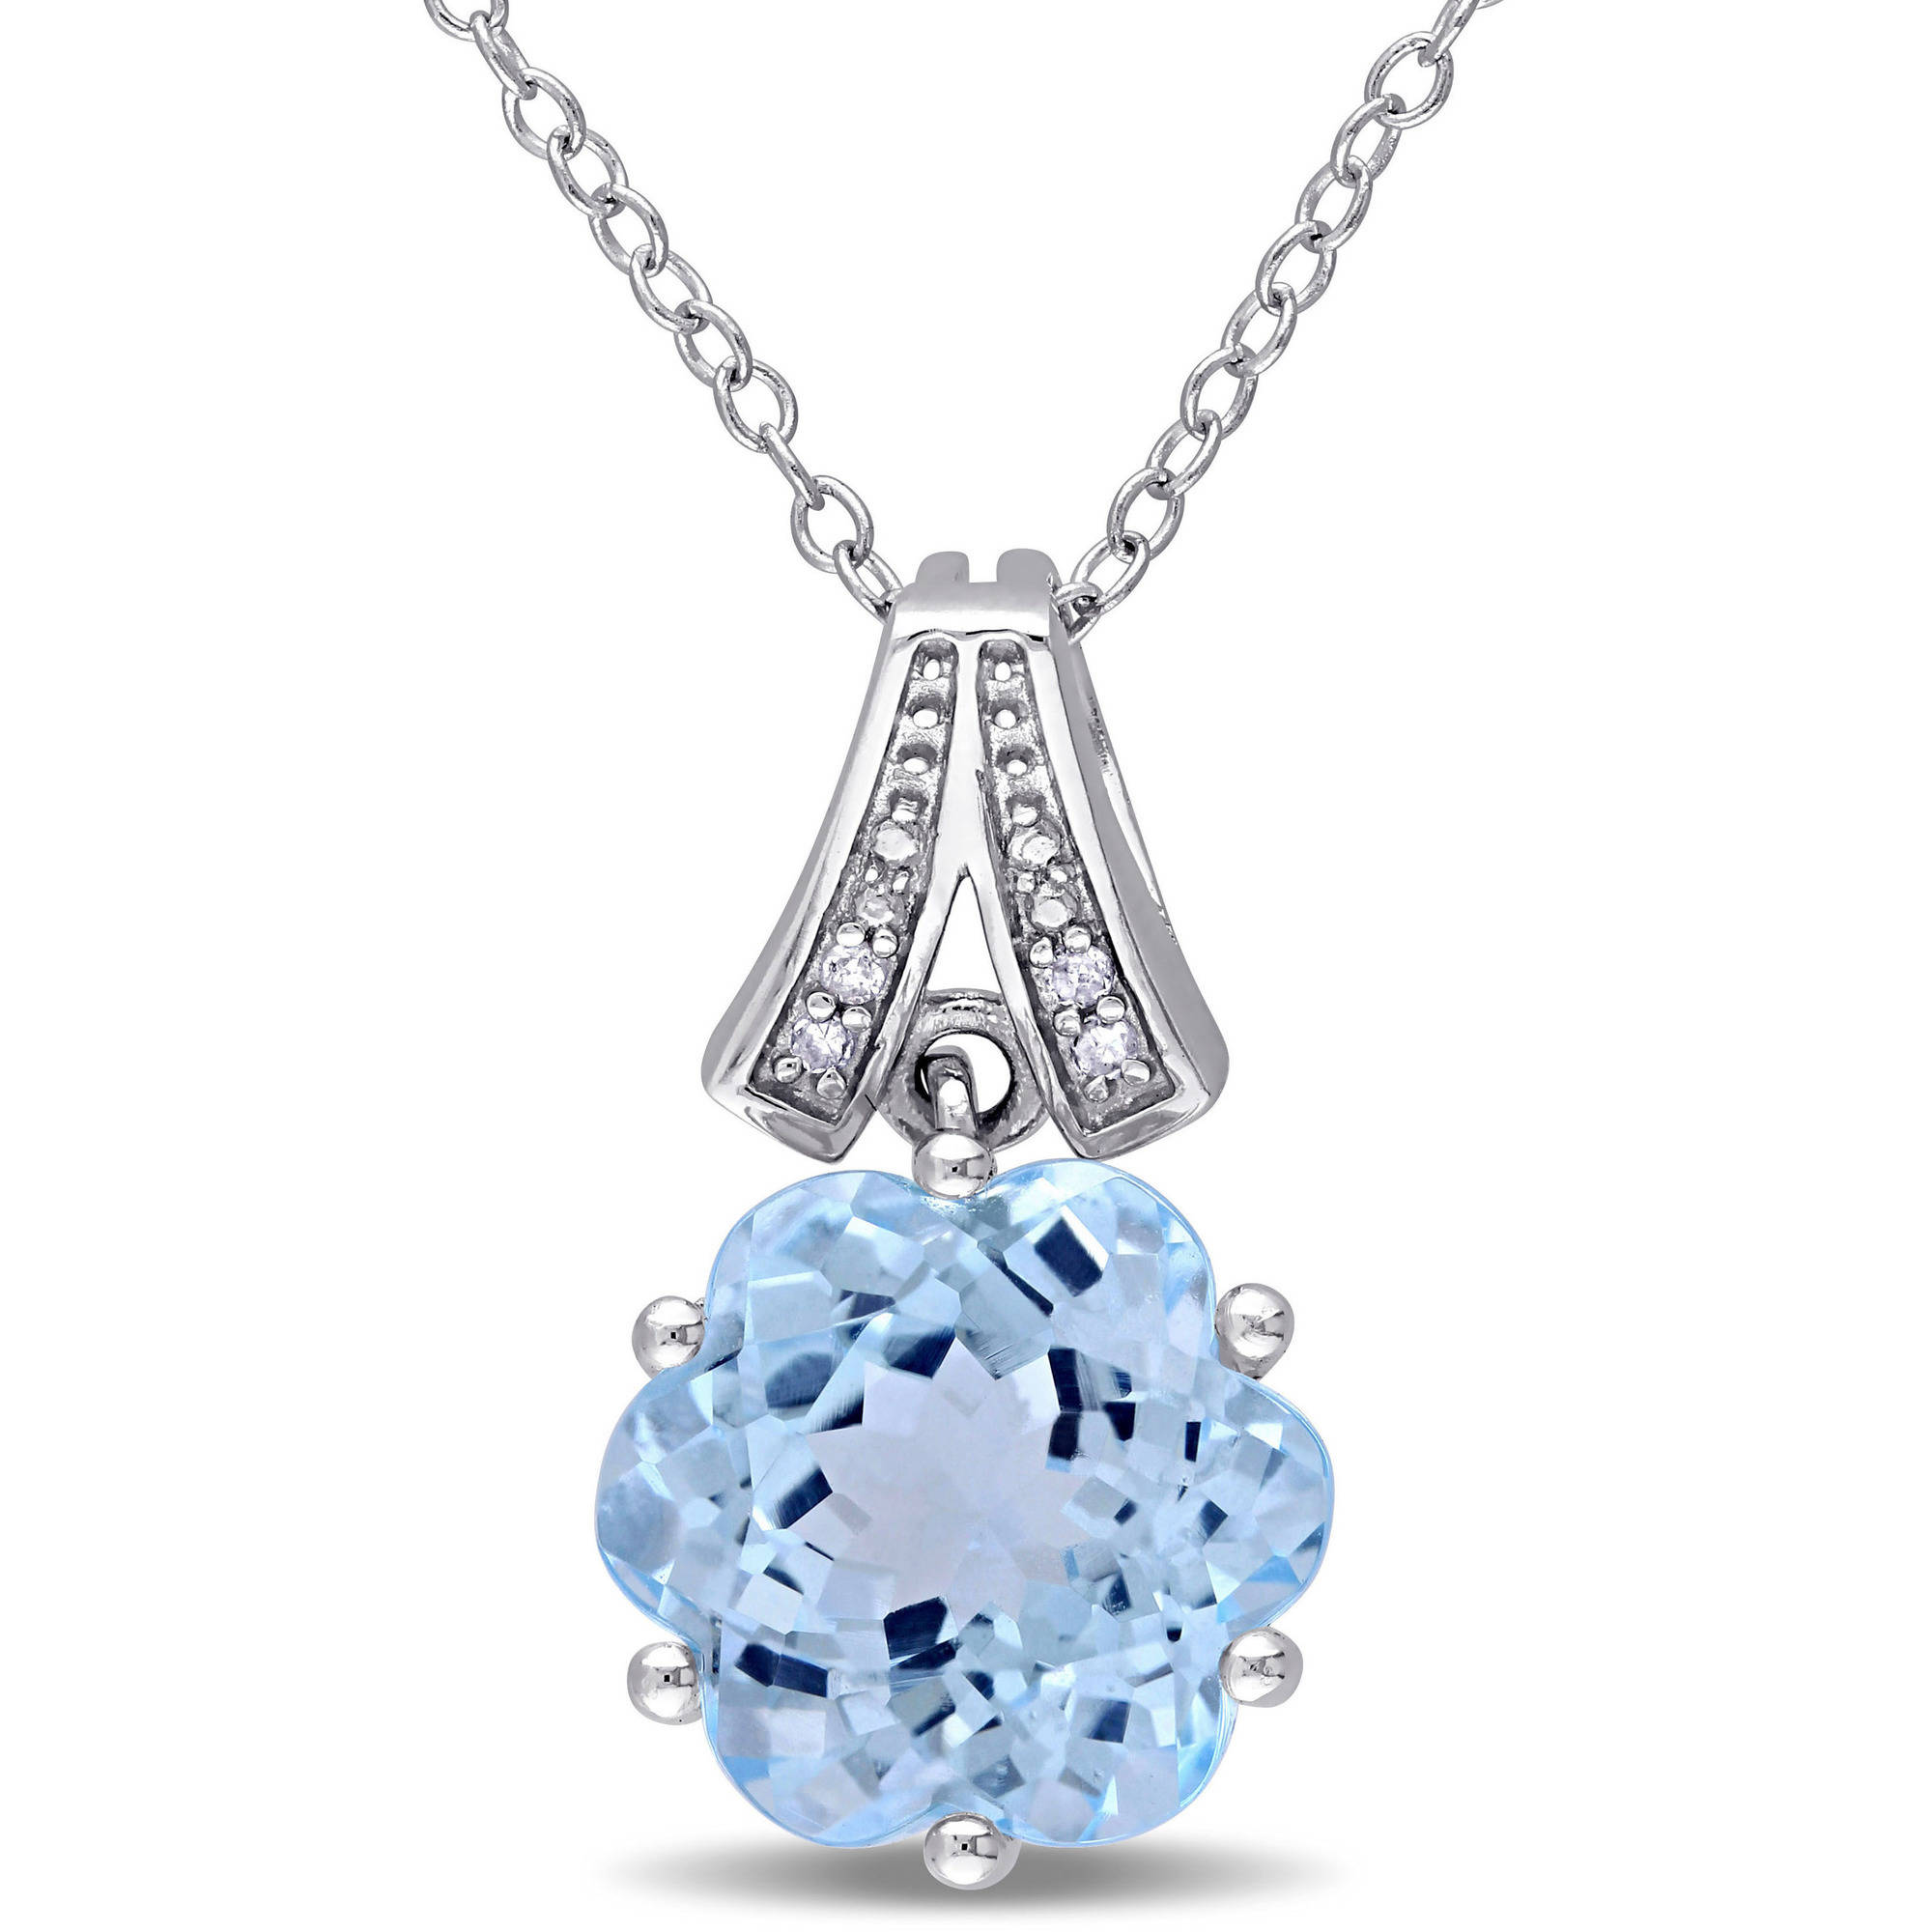 """Tangelo 7-1 2 Carat T.G.W. Sky Blue Topaz and Diamond-Accent Sterling Silver Fashion Pendant, 18"""" by Tangelo"""